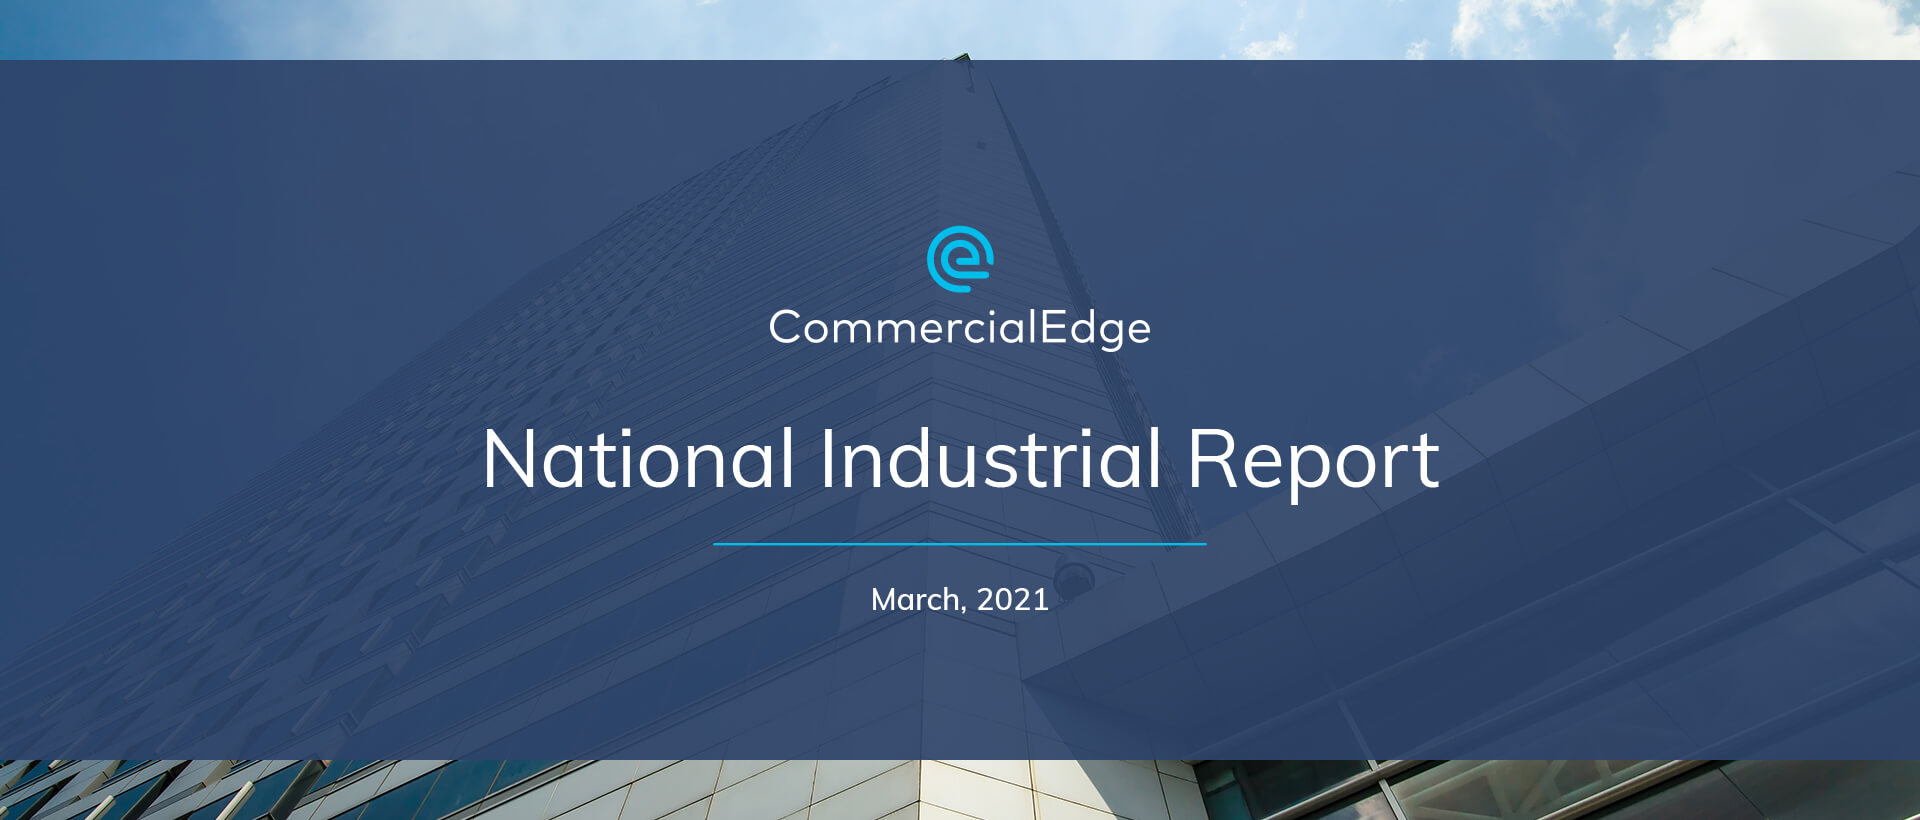 CommercialEdge National Industrial Report March 2021